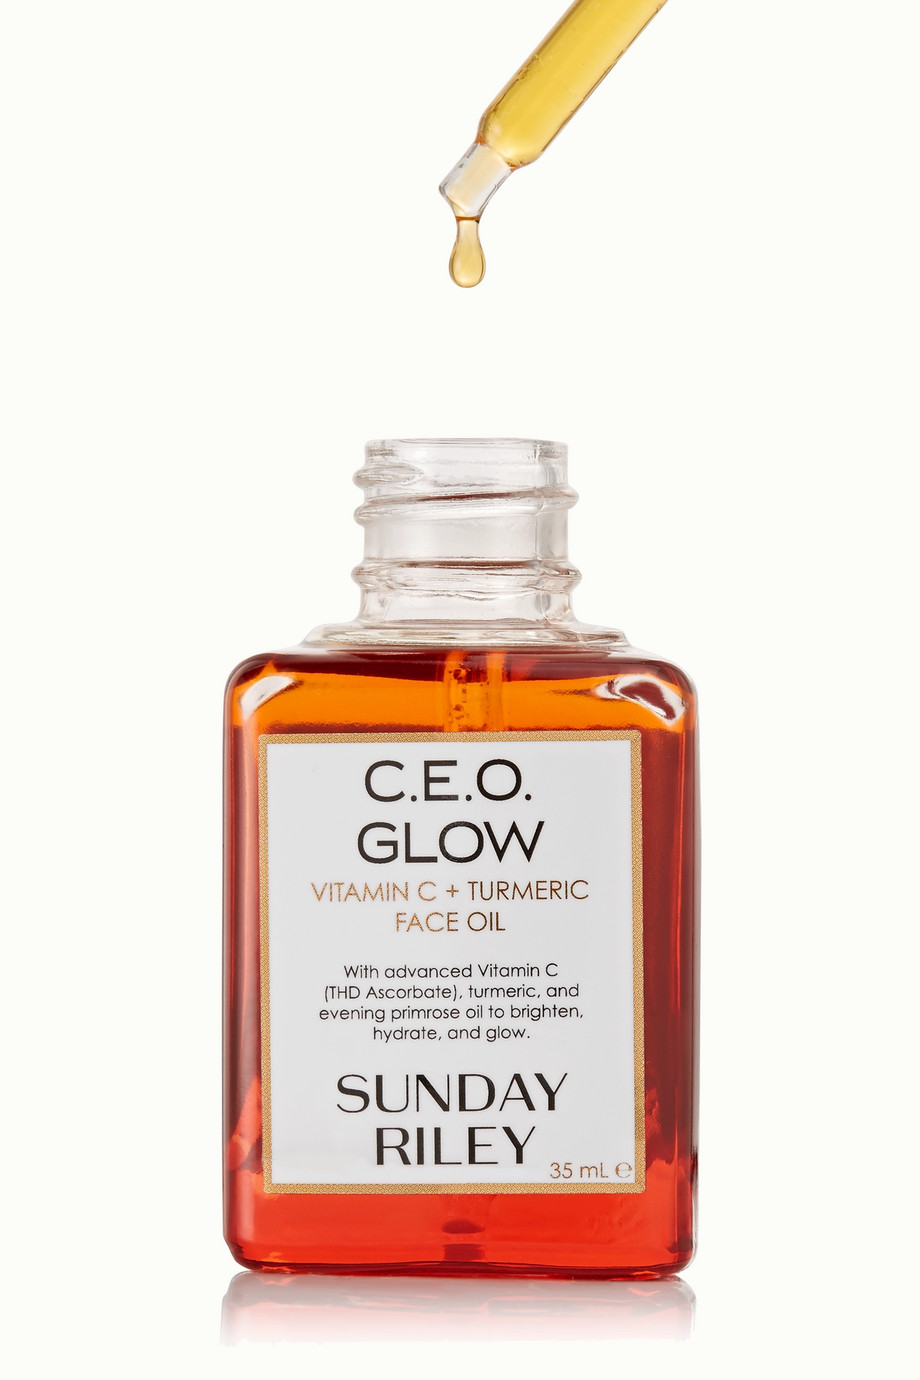 SUNDAY RILEY C.E.O. Glow Vitamin C + Turmeric Face Oil, 35ml